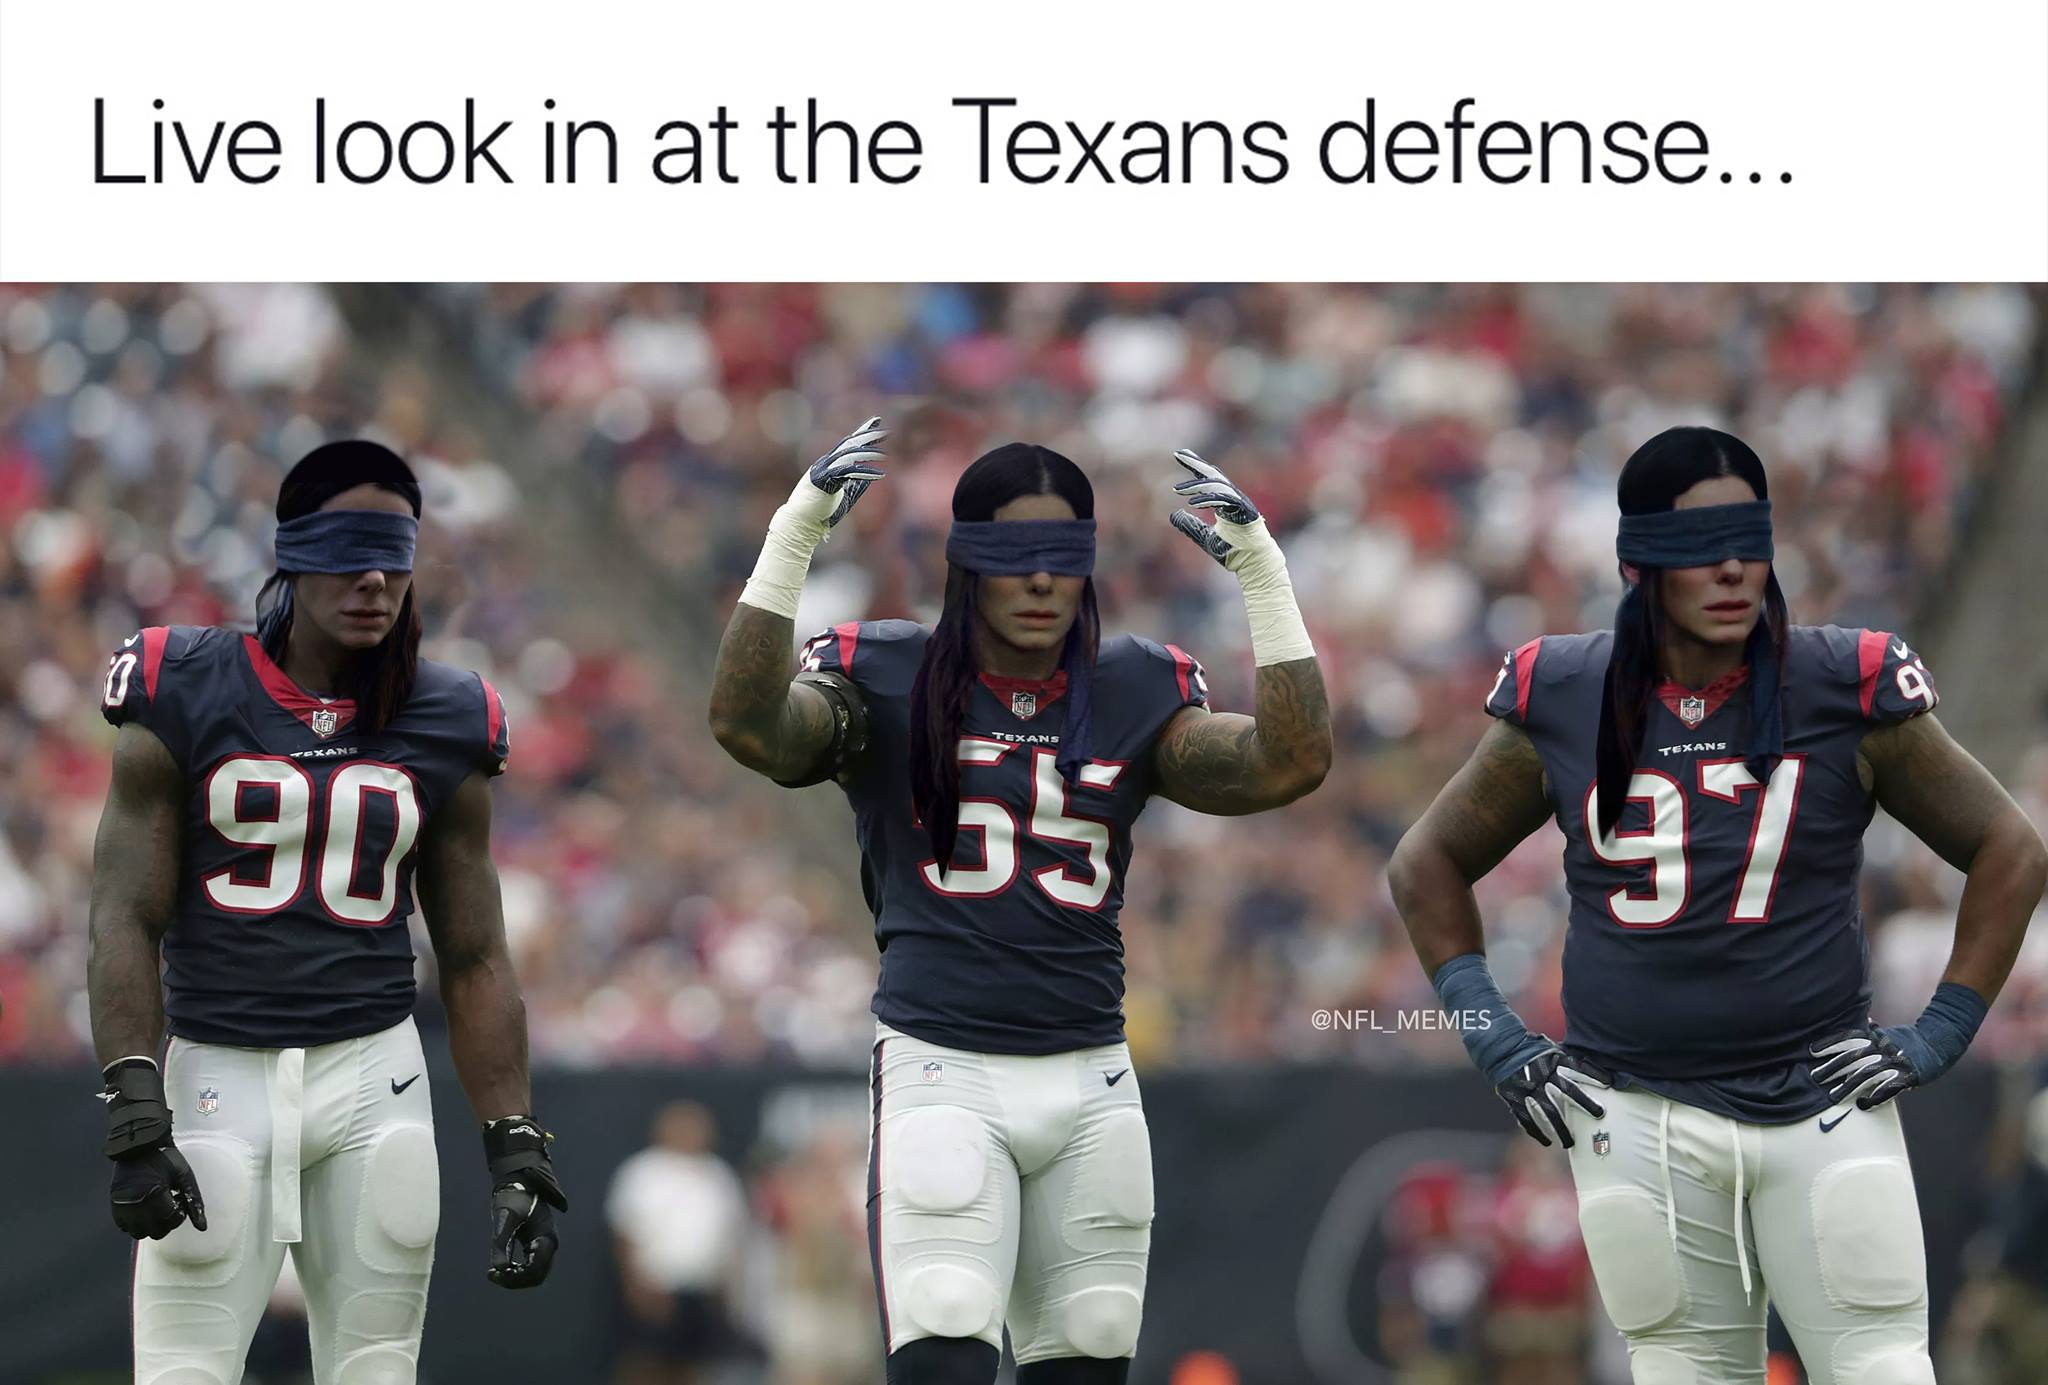 memes nfl texans playoff football sports playoffs mock houston cowboys round nflmemes loss misfortune